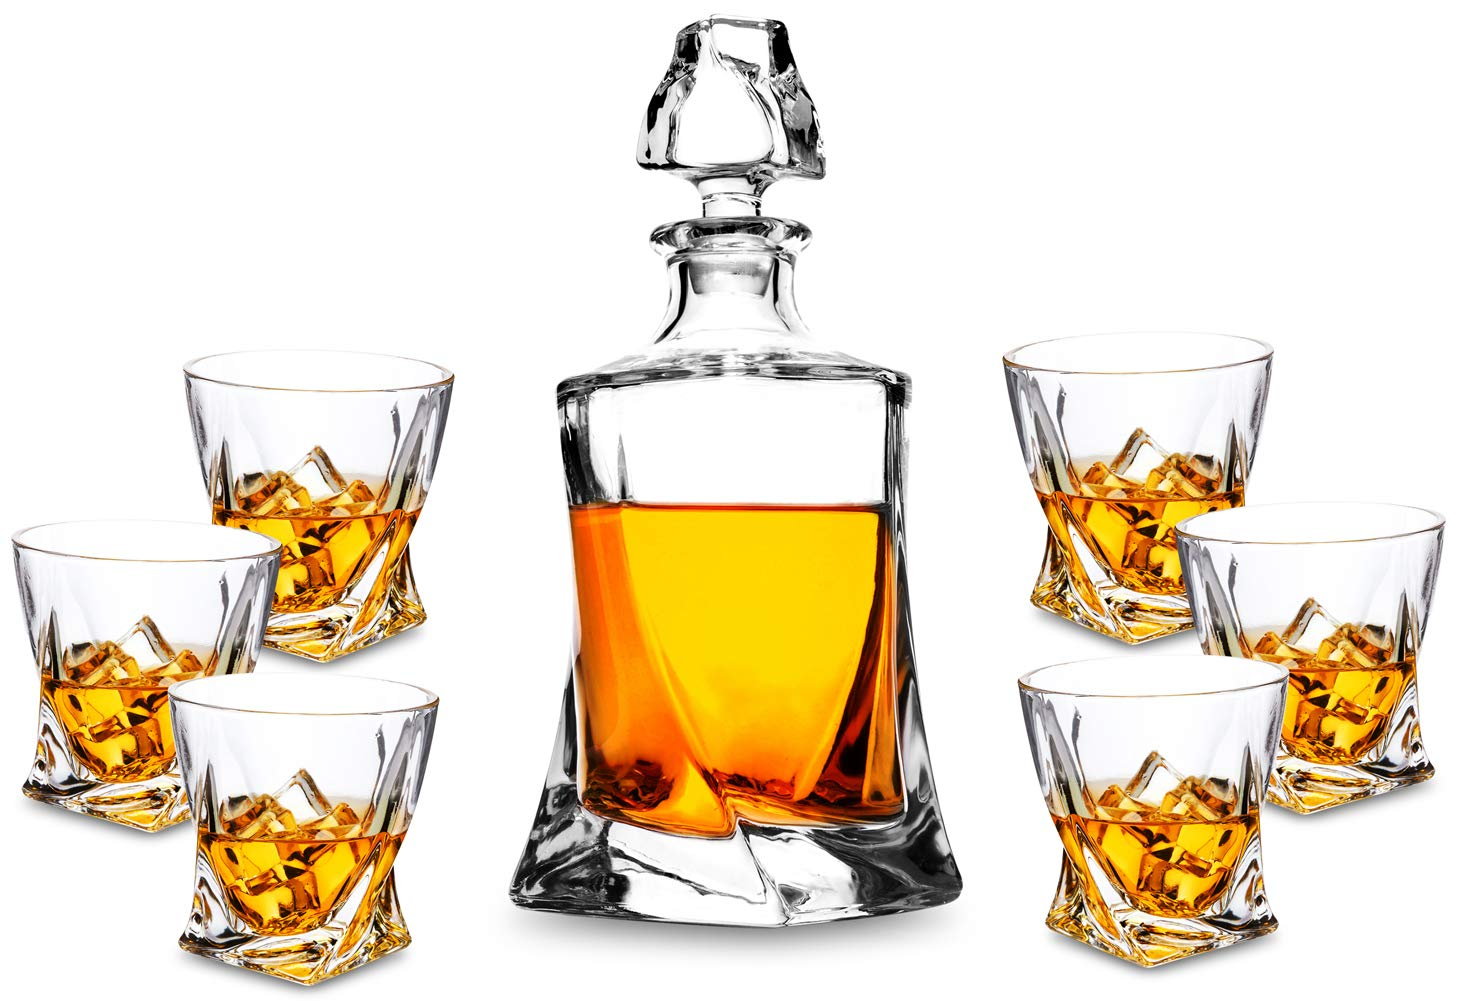 KANARS 7-Piece Ultra-Clarity Crystal Whiskey Glasses Set with 6 Old Fashioned Twisted Glasses for Scotch, Bourbon or Liquor